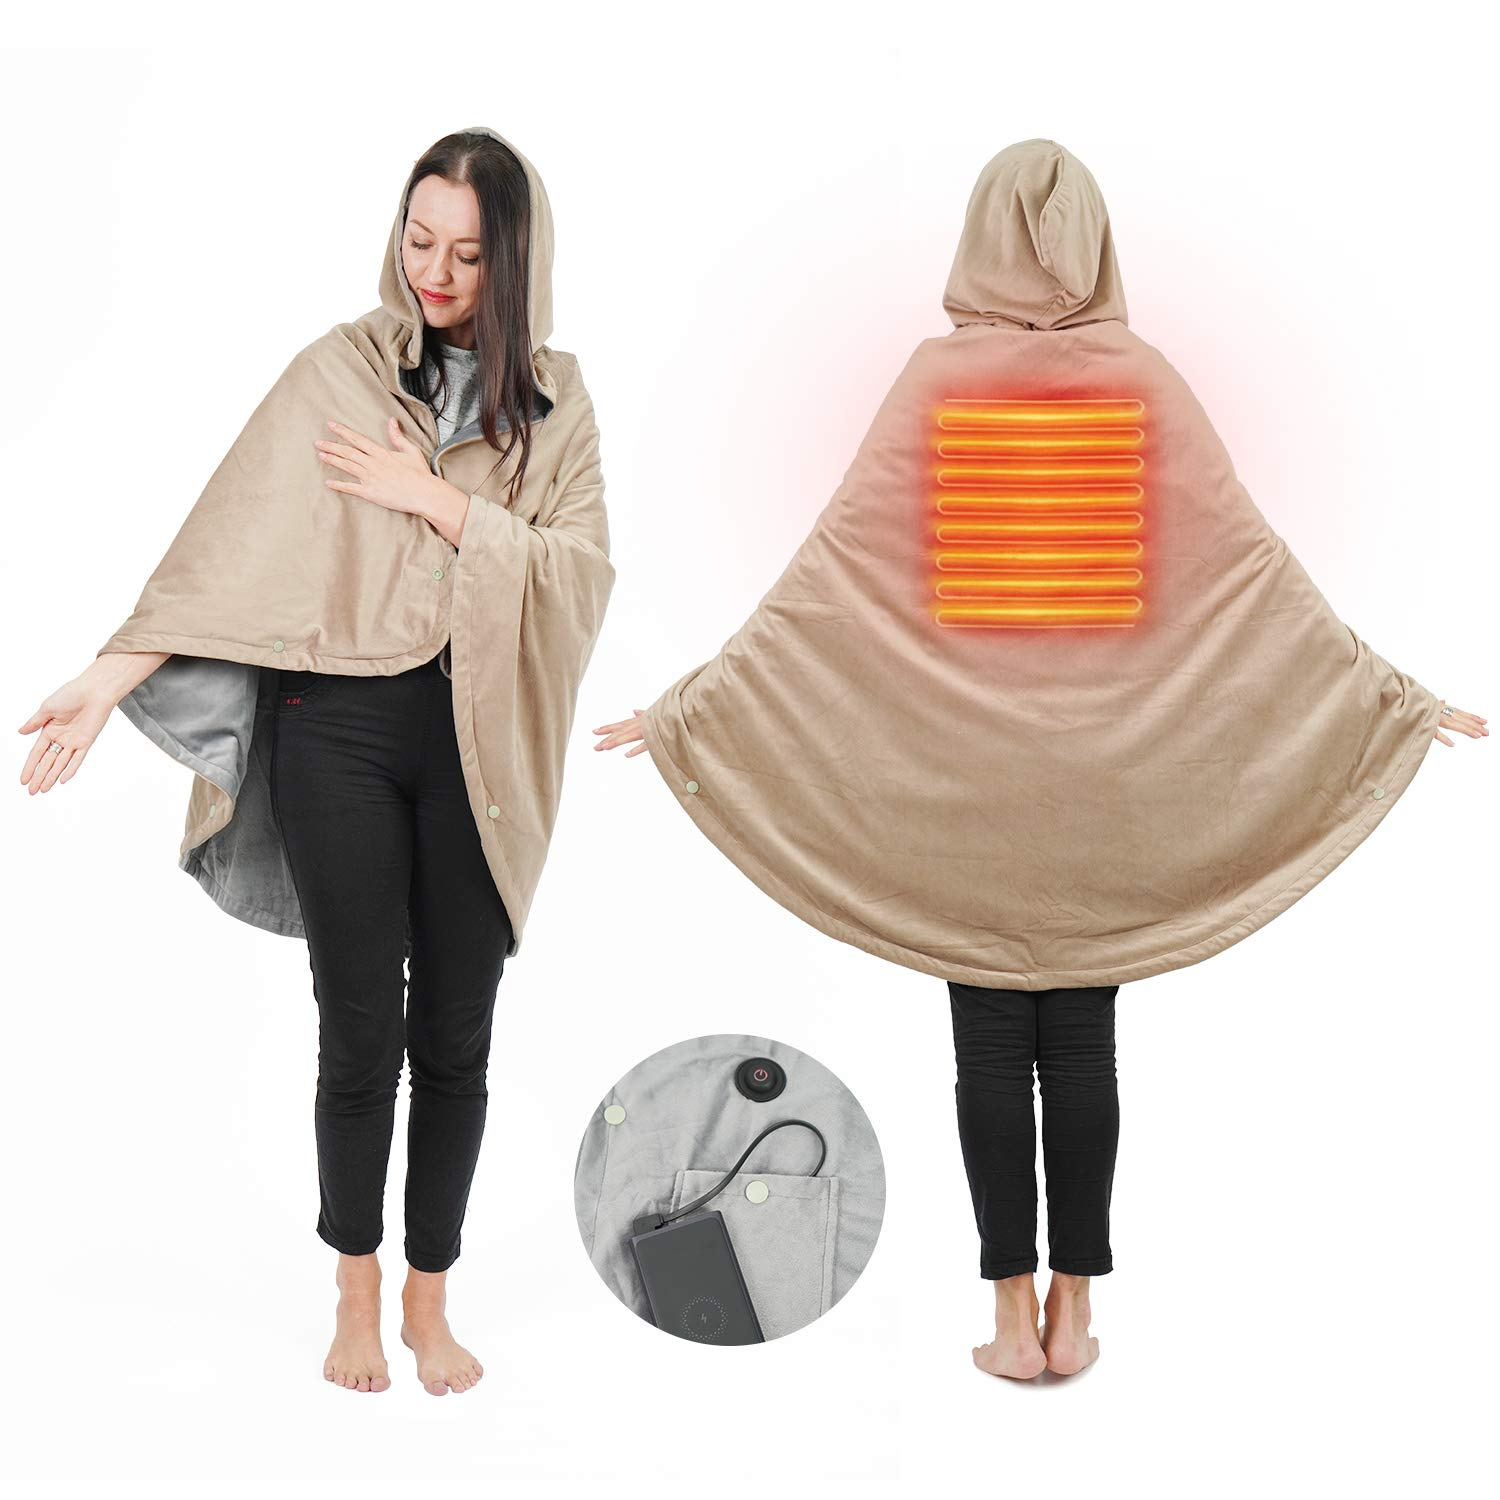 """Wearable Electric Blanket, Portable Poncho Wrap, Cordless Rechargeable Heated Shawl Blanket, Super Soft & Warm Fleece, Home Office & Travel Use, Machine Washable, Tan, 57""""X39"""""""